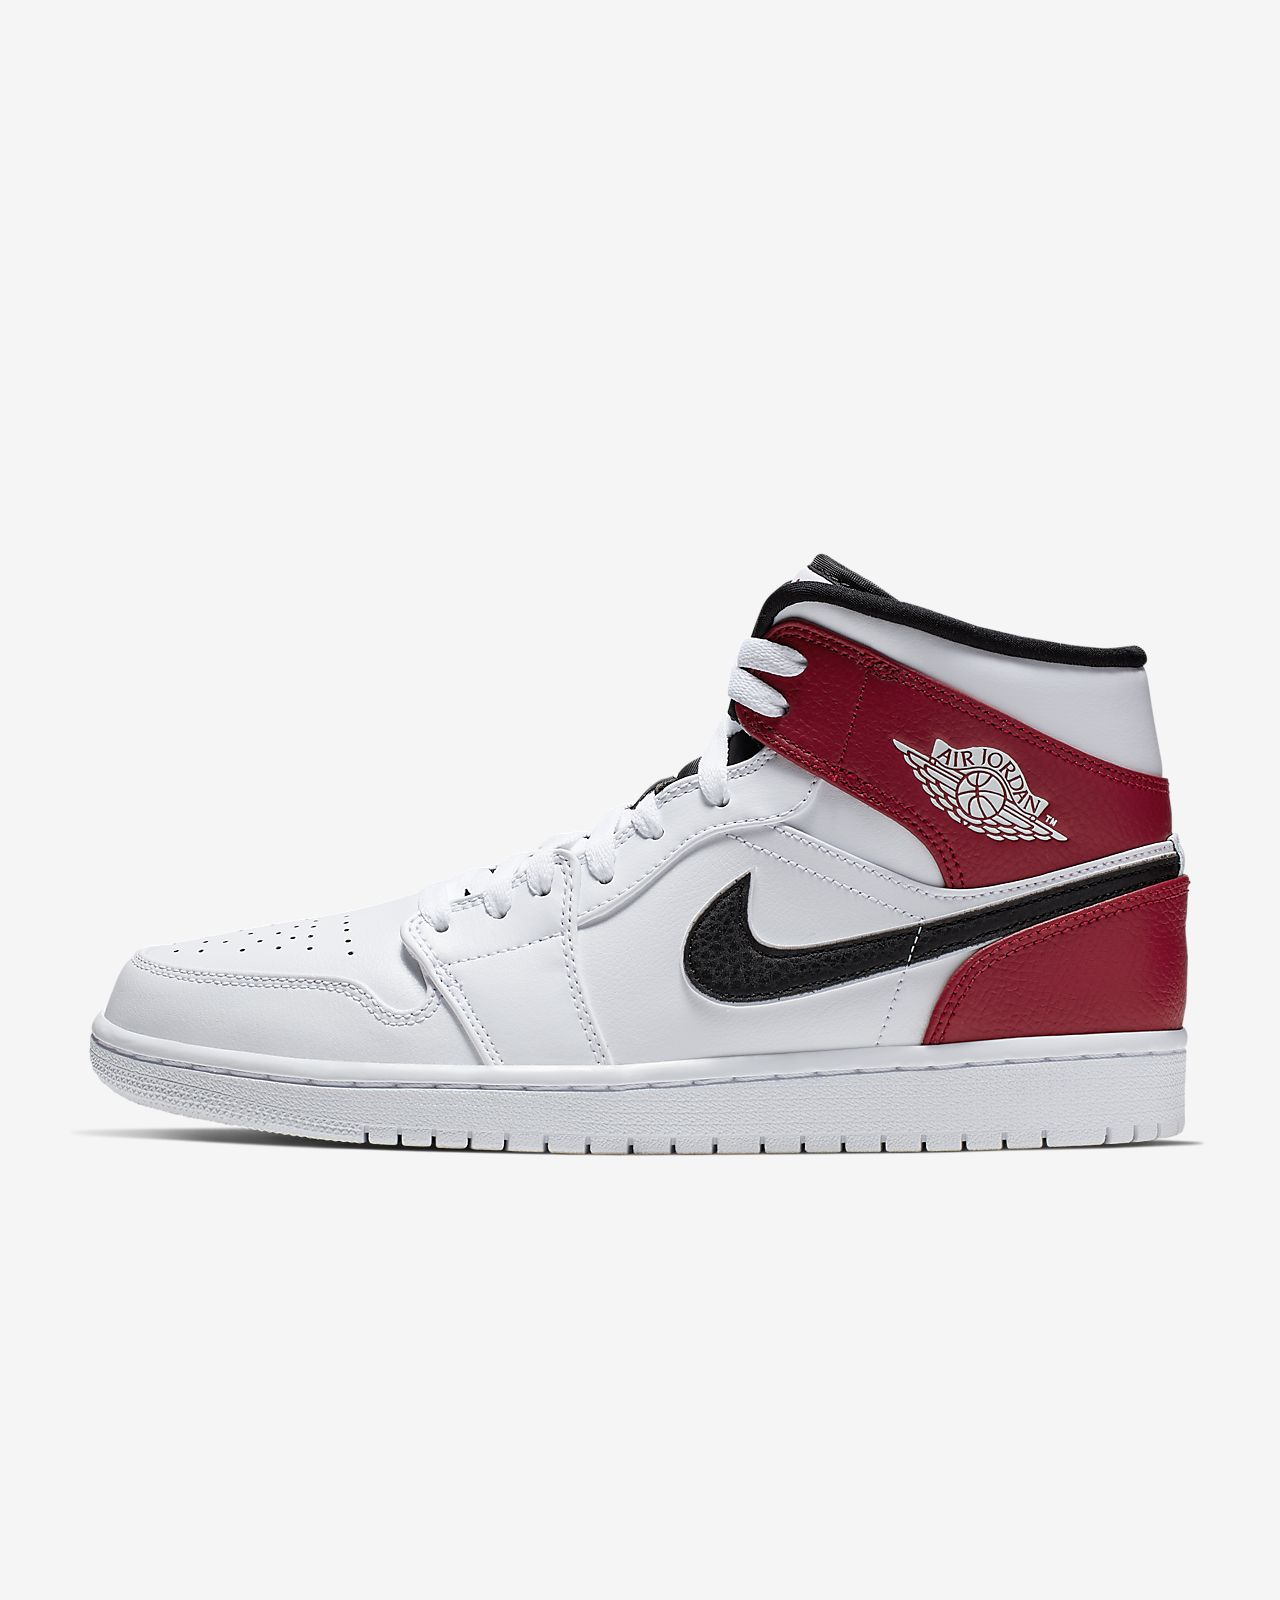 2d8a22d5a46 Air Jordan 1 Mid Men s Shoe. Nike.com GB